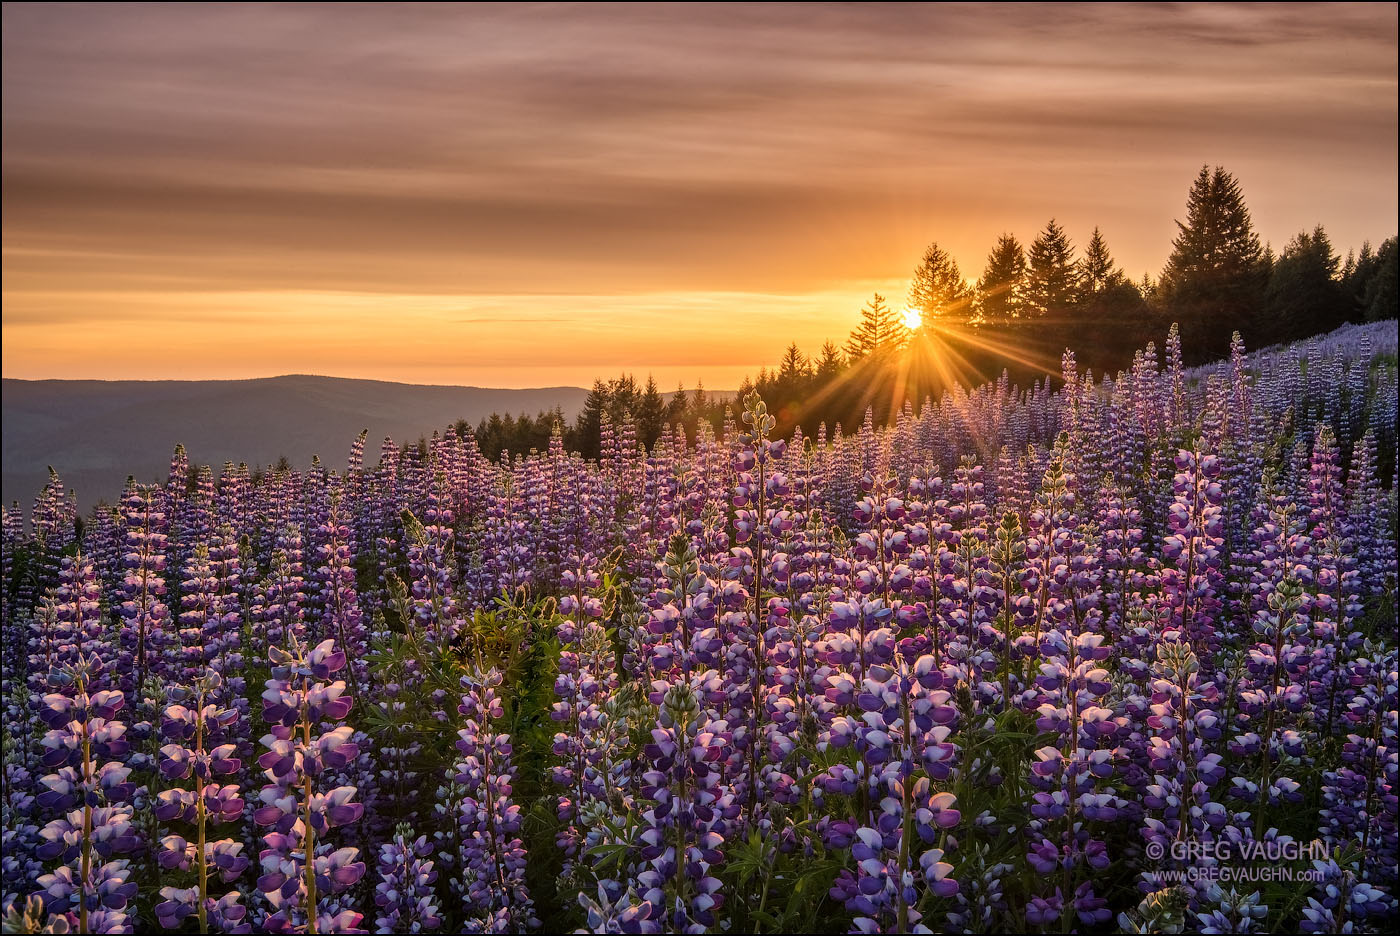 field of blooming lupine with sun setting behind trees